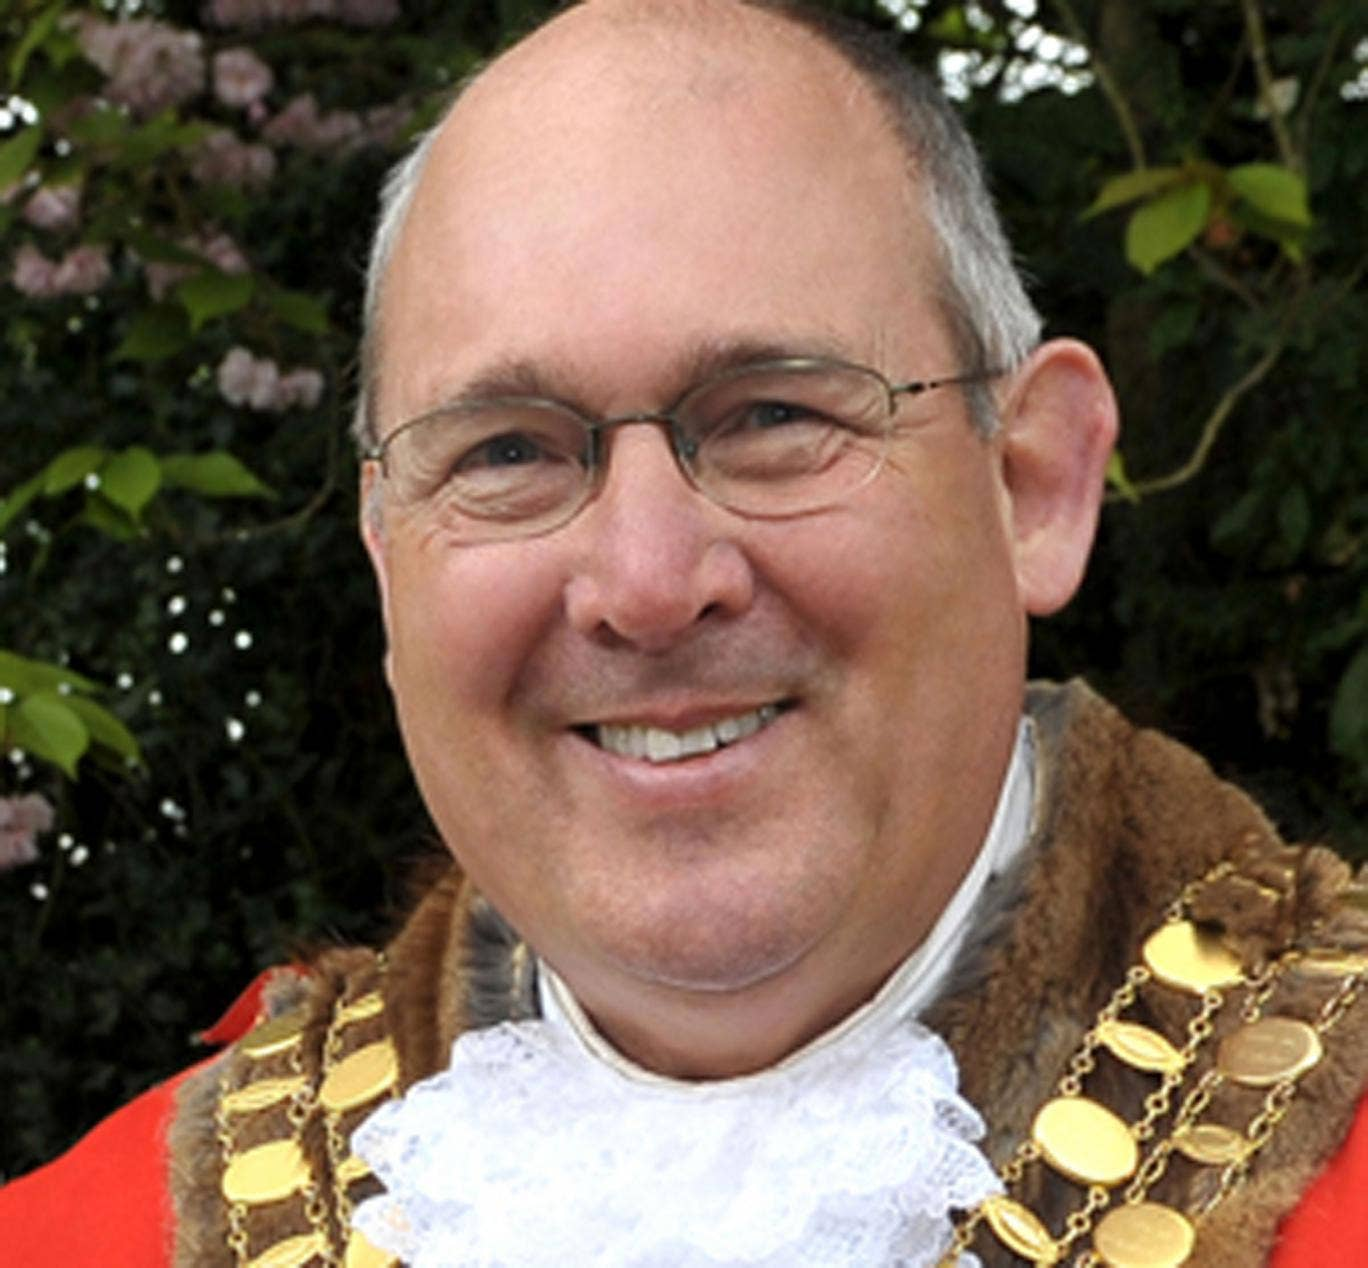 Mayor of Swindon Nick Martin was forced to apologise over comments about disabled people